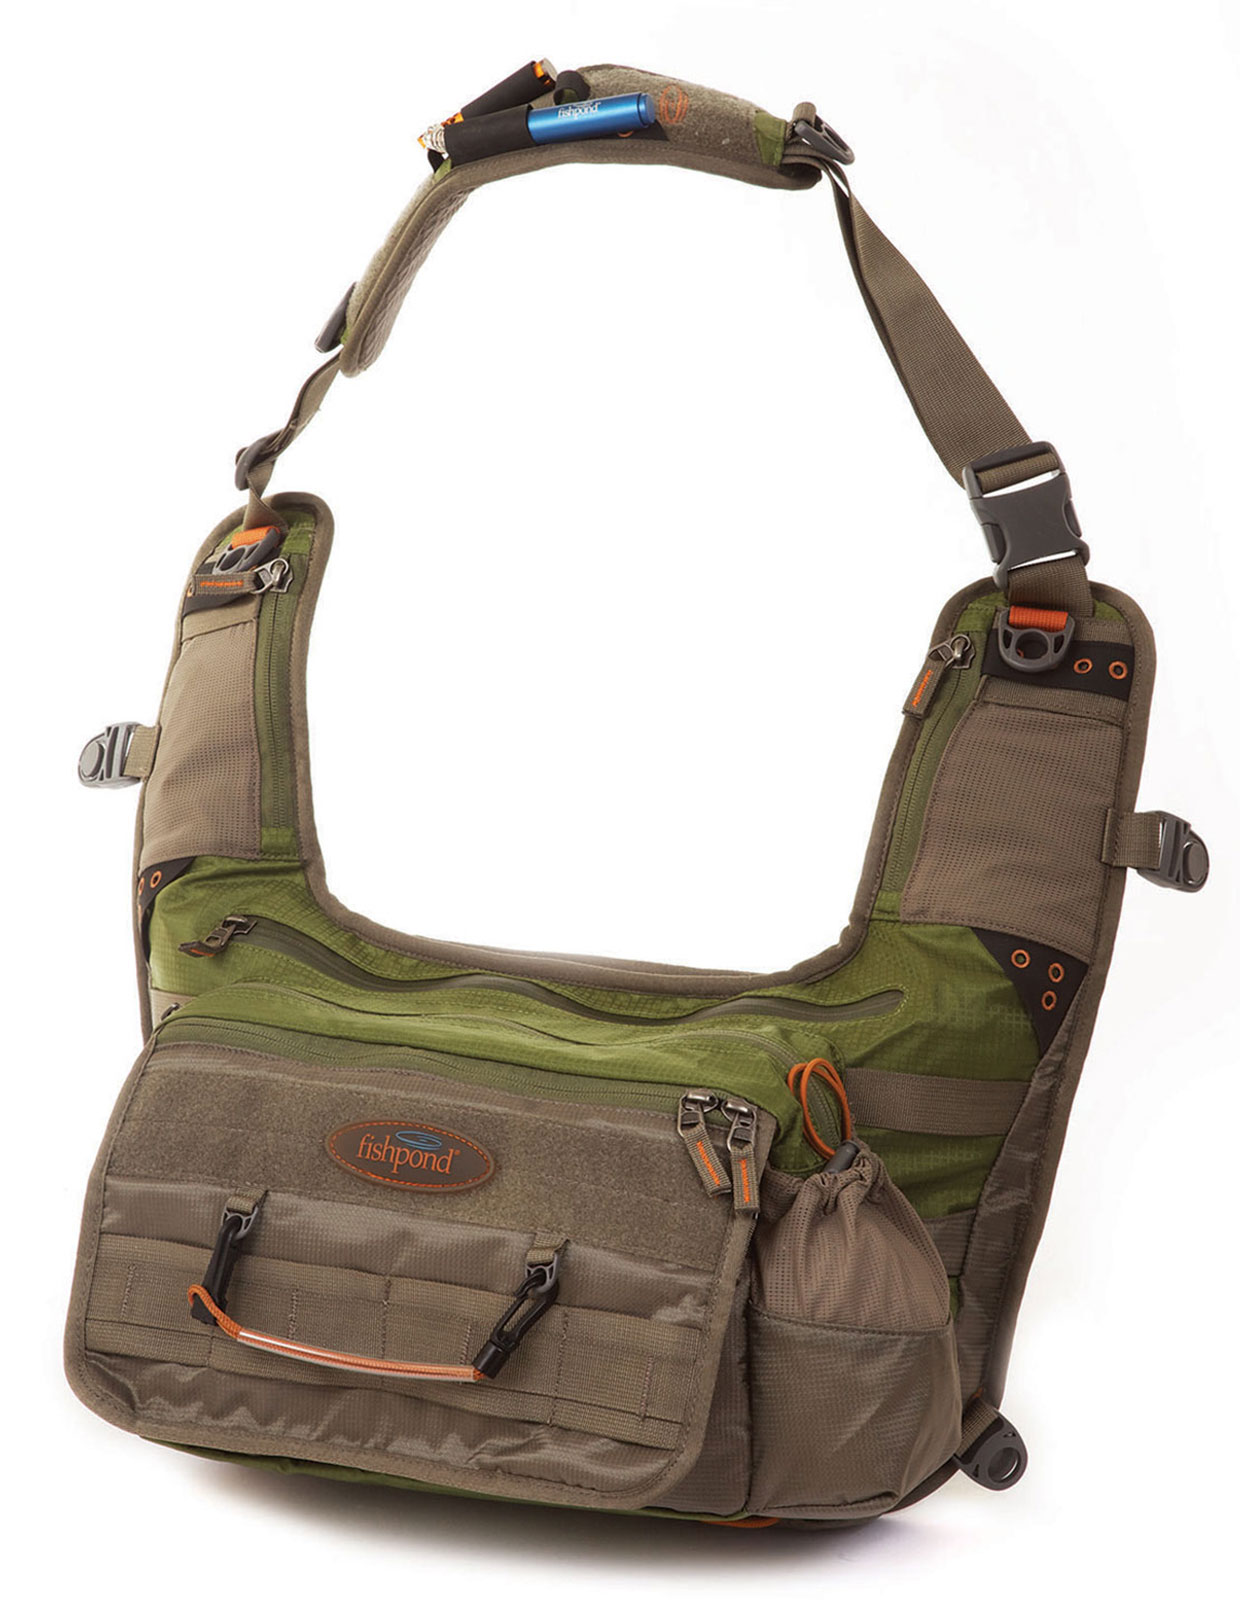 Fishpond delta sling fly fishing chest pack bag storage for Fishing chest pack